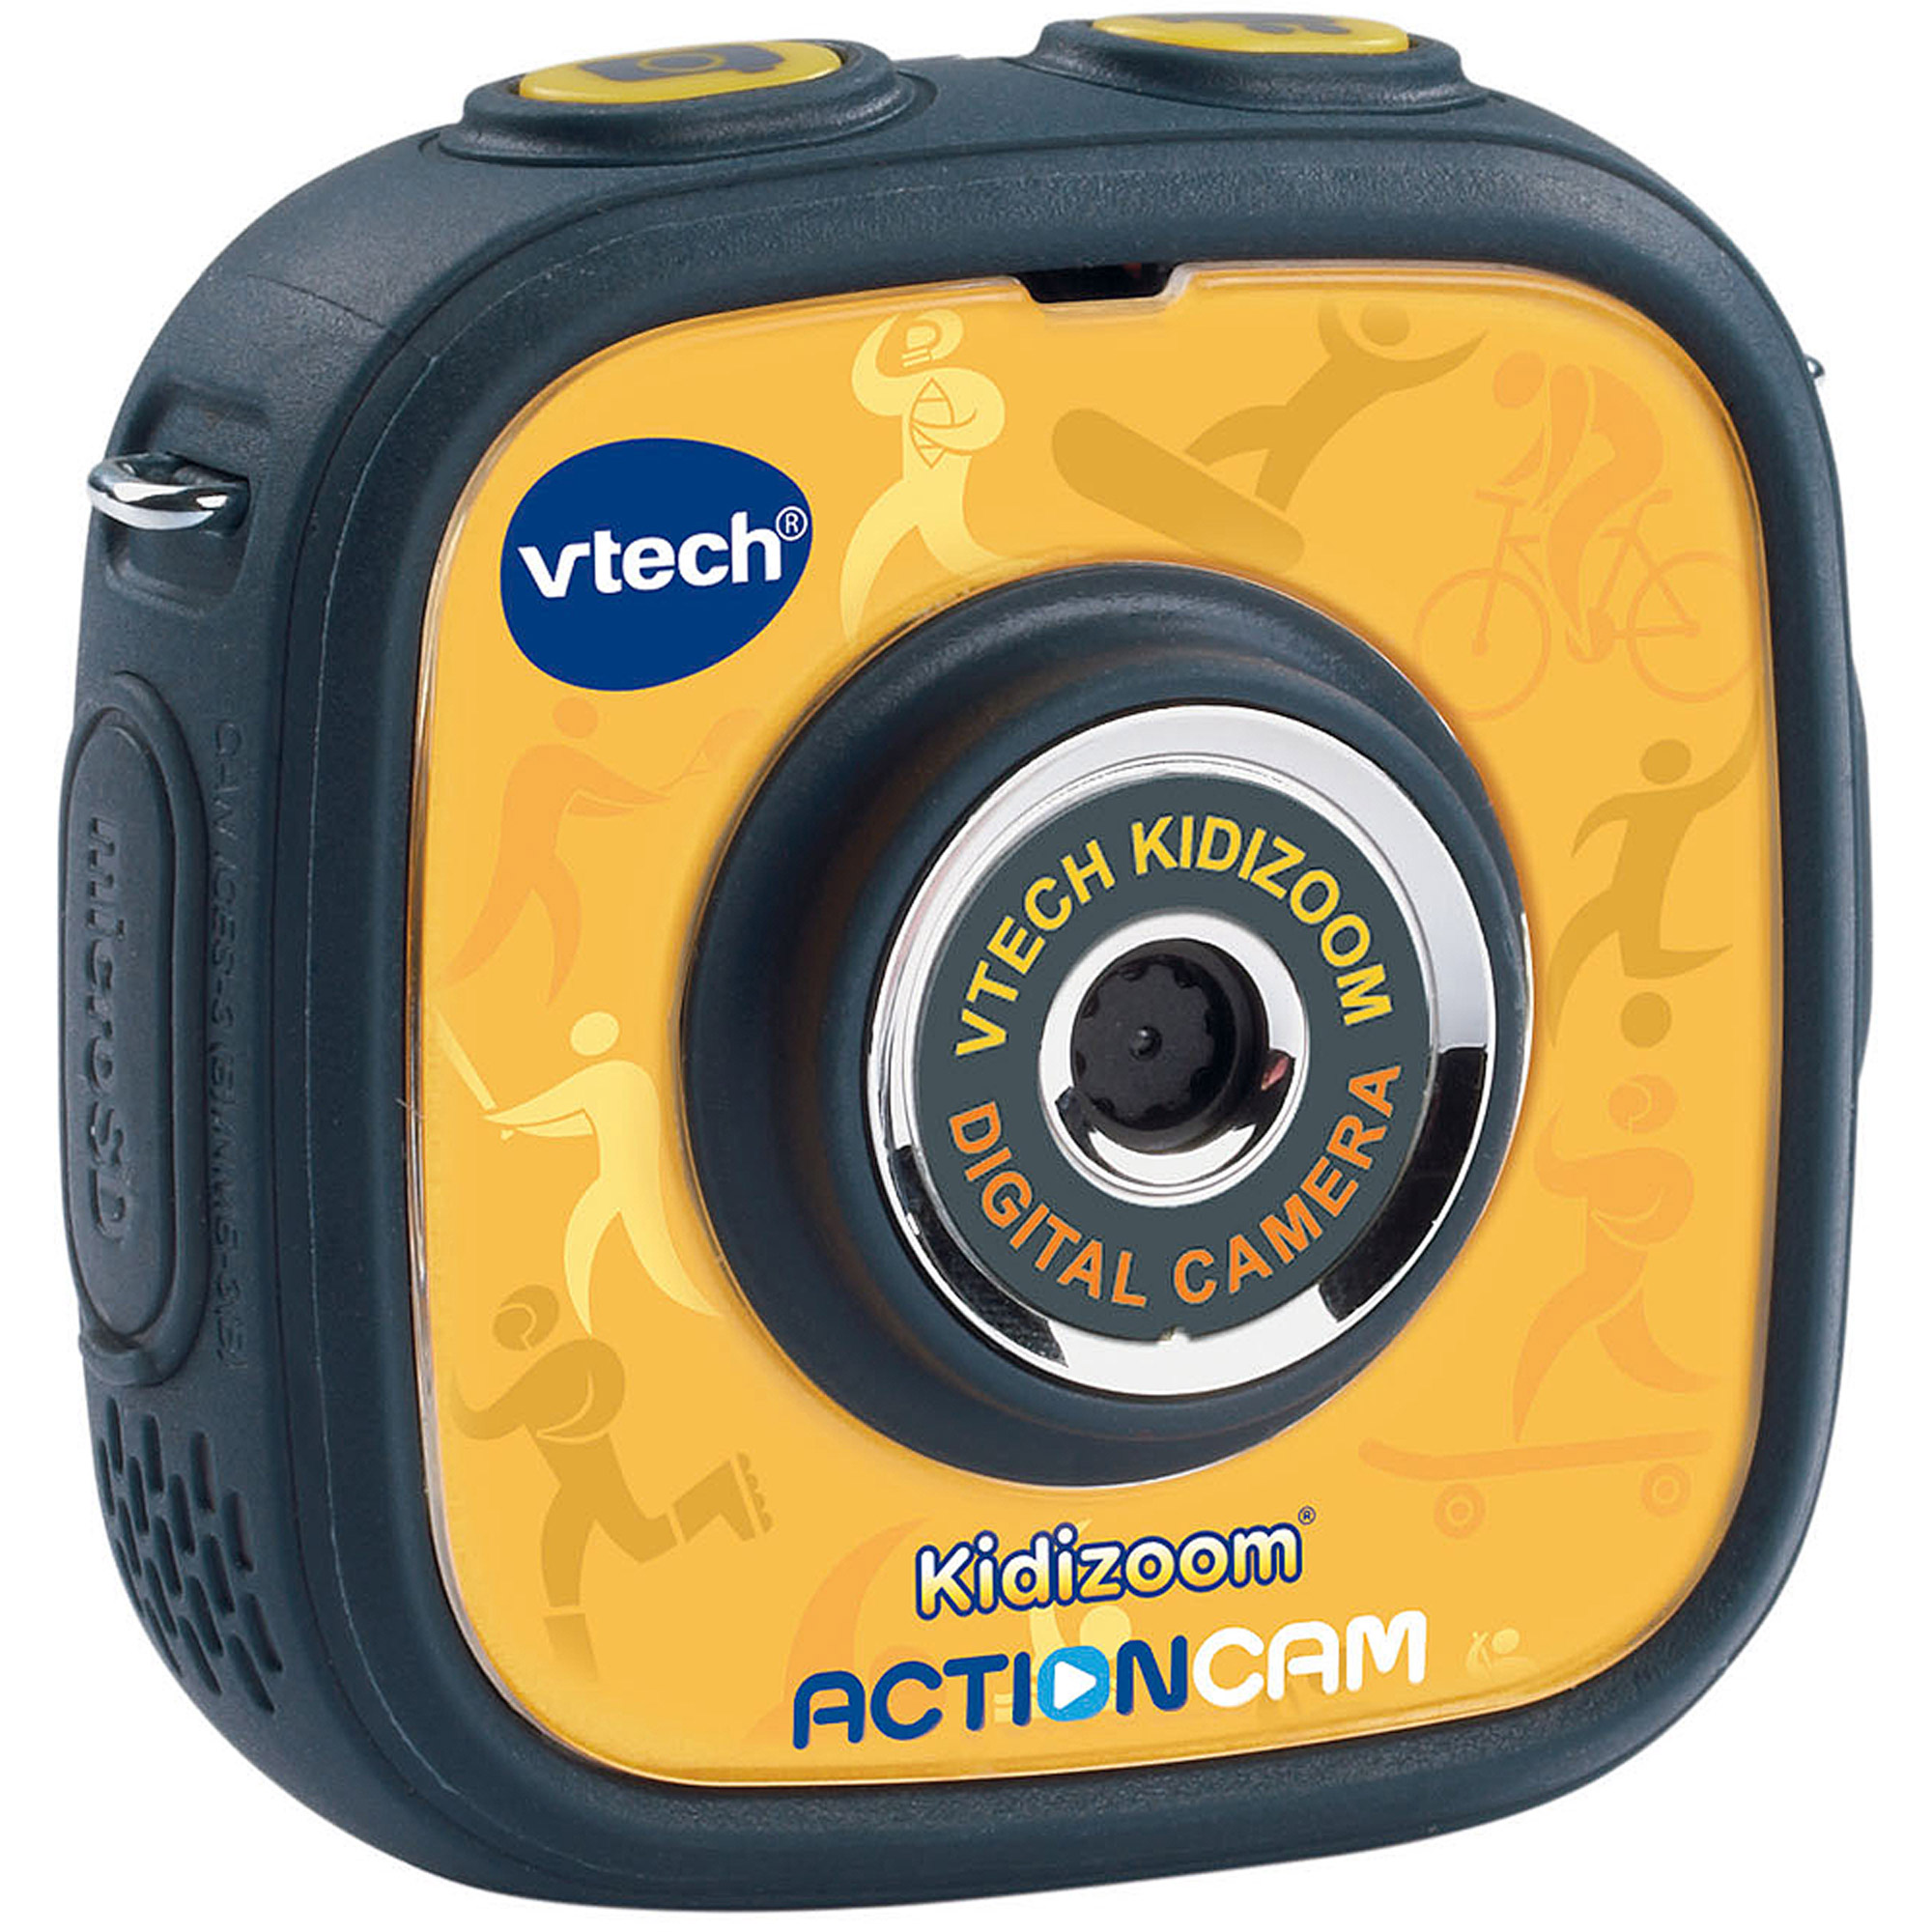 VTech Kidizoom Action Cam, in colors Yellow/Black or Purple